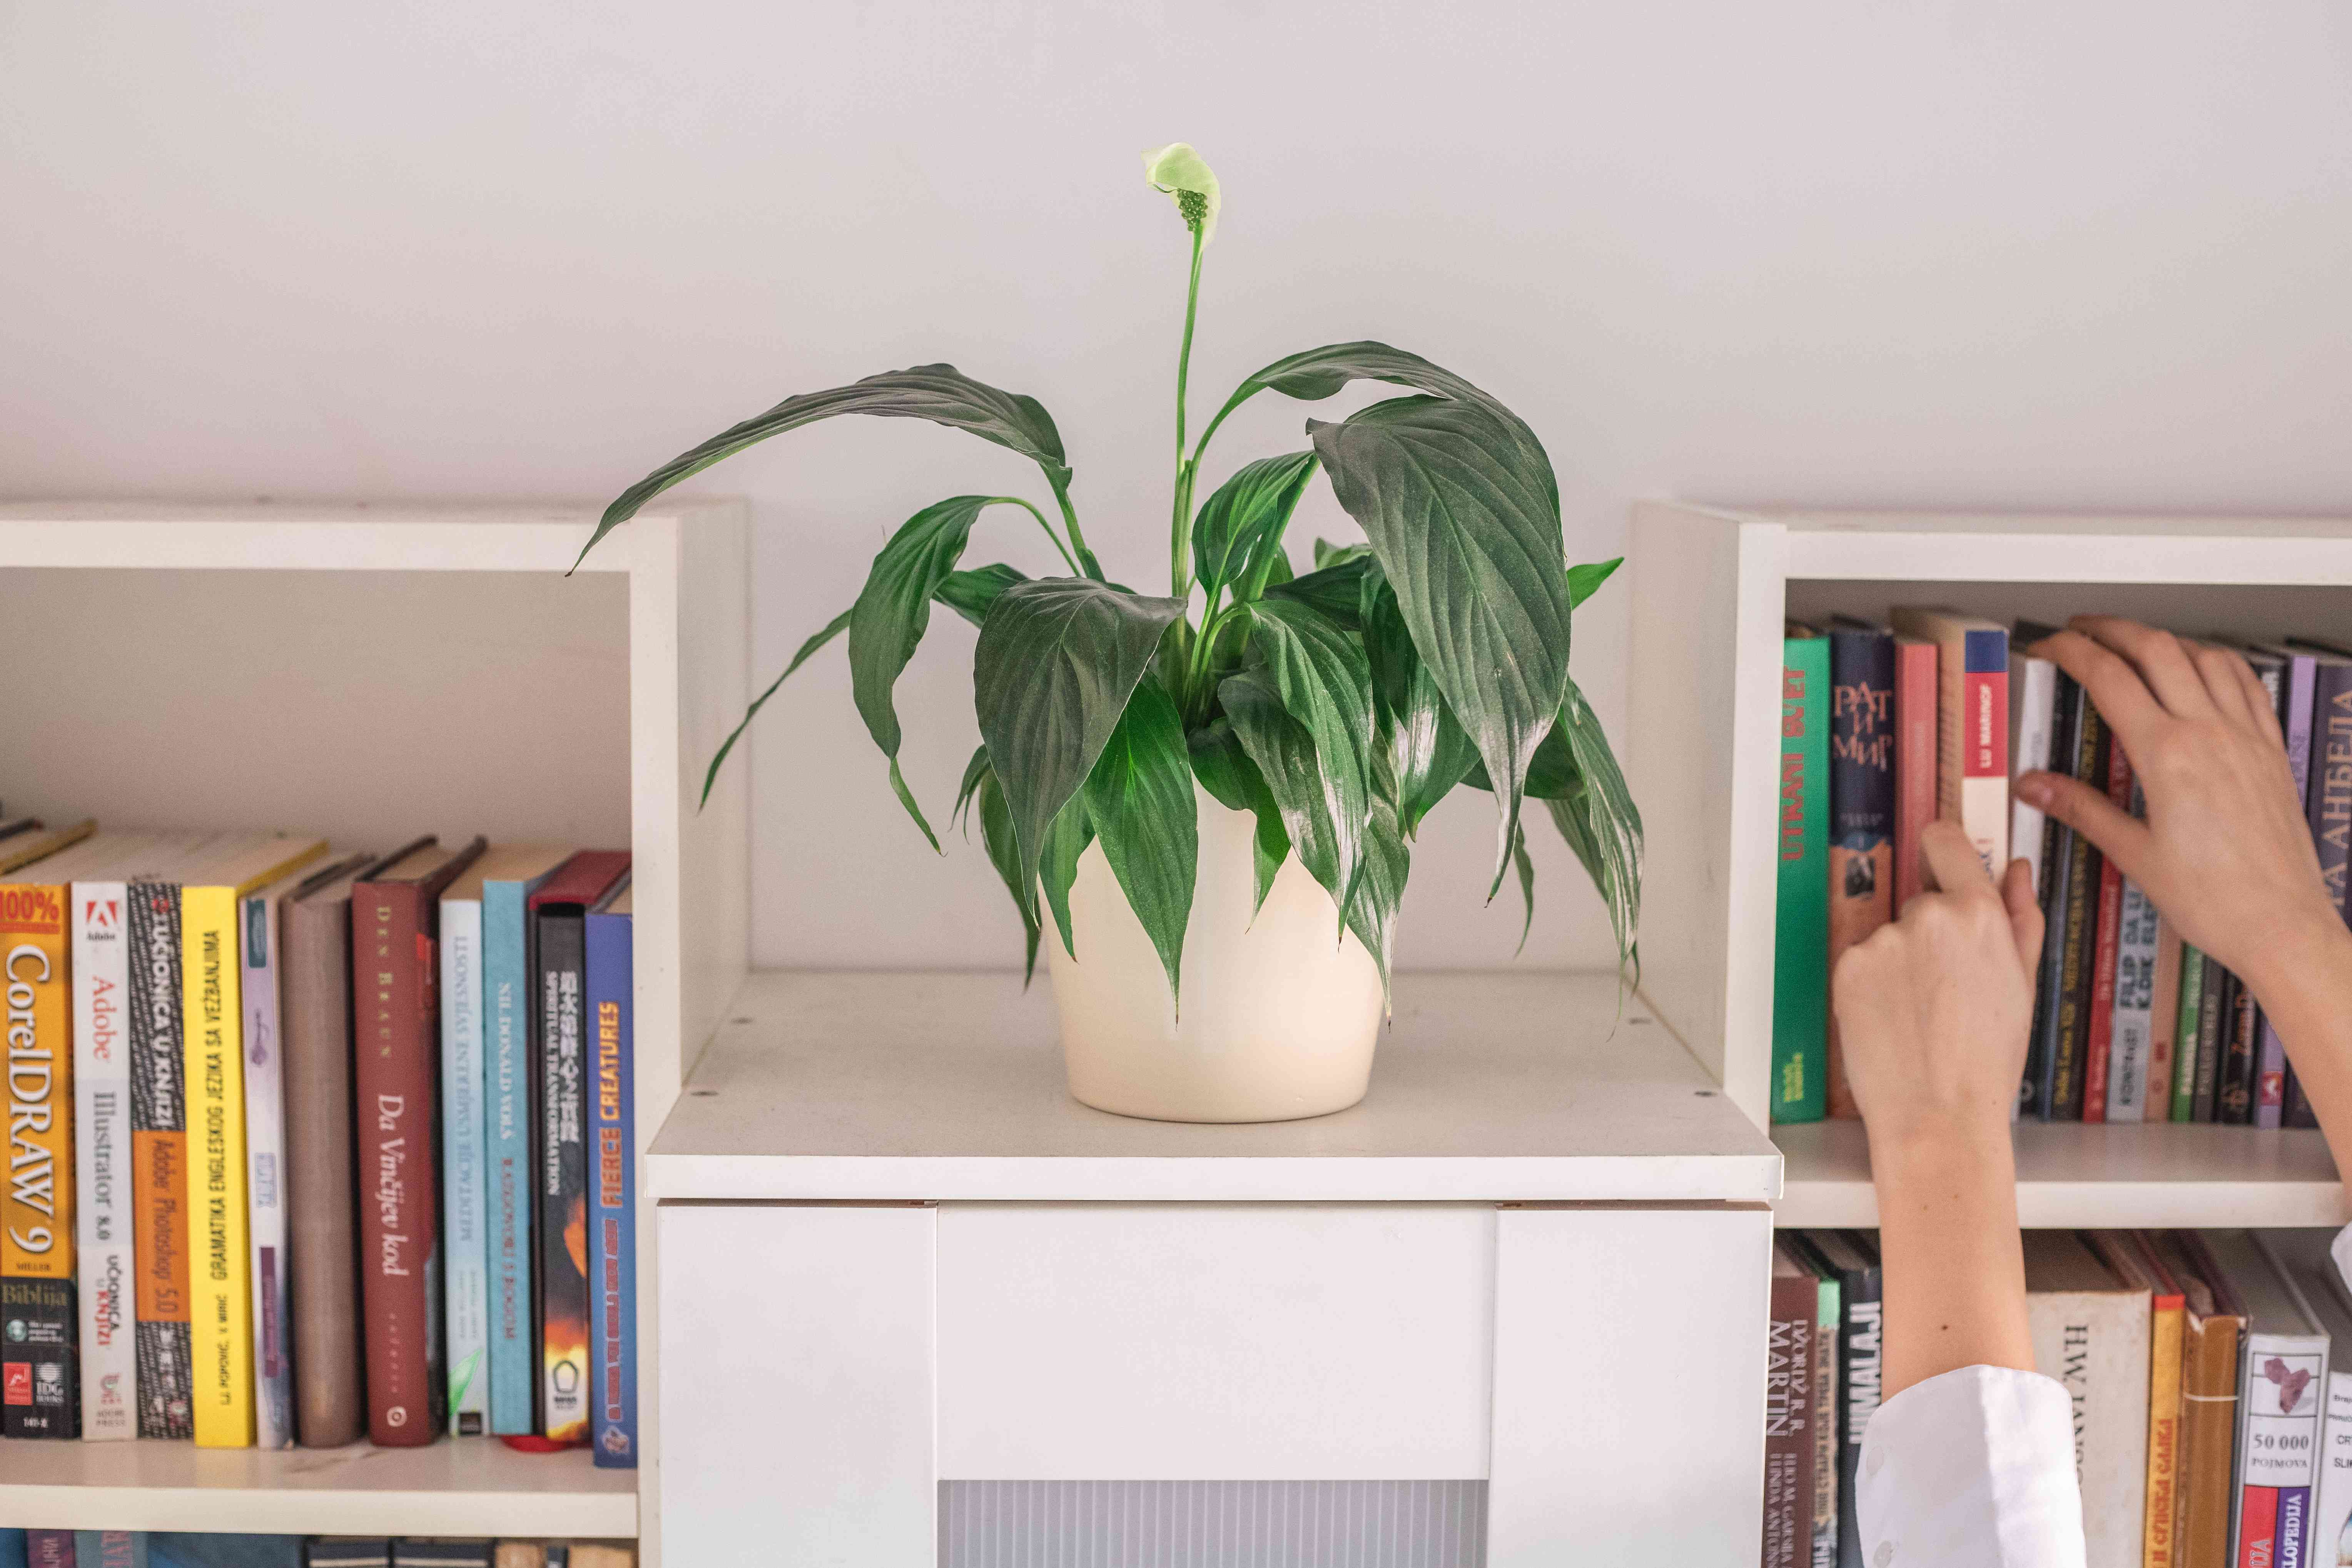 peace lily plant on white bookshelf while hands reach for a book